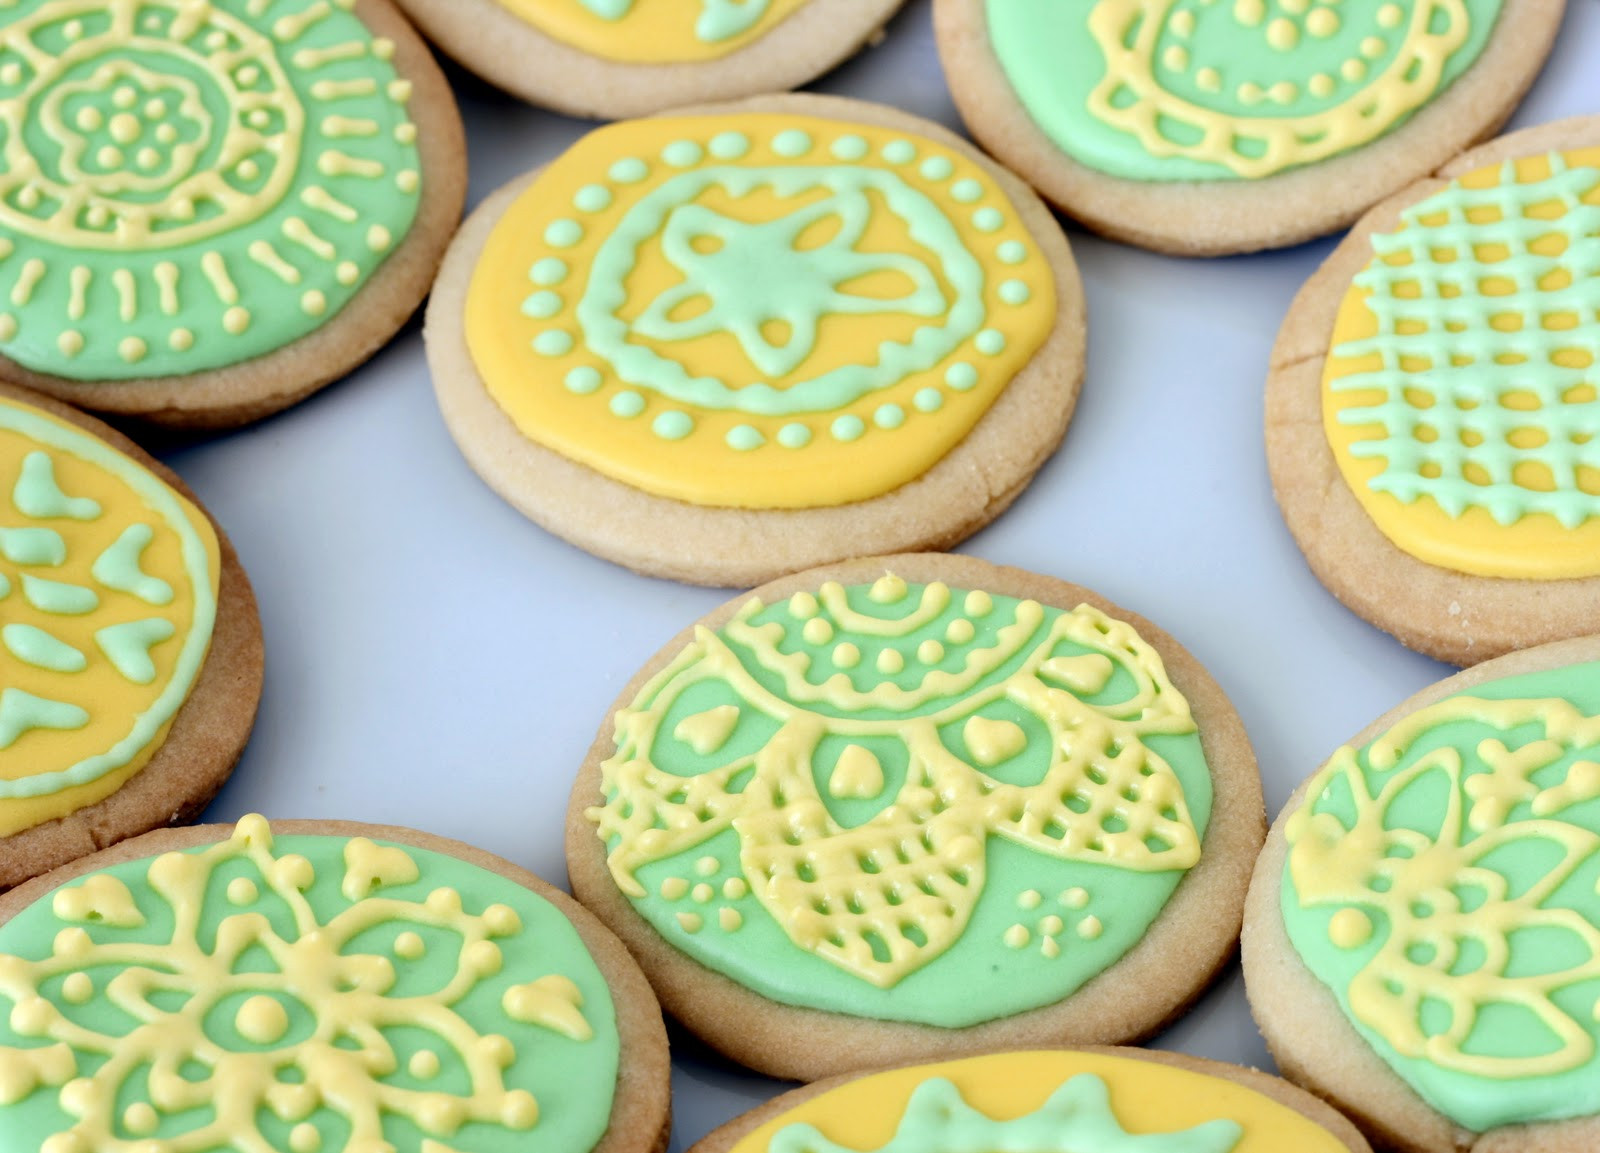 Sugar Cookies With Icing  Daring Decorated Sugar Cookies with Daring Bakers Bake Fresh